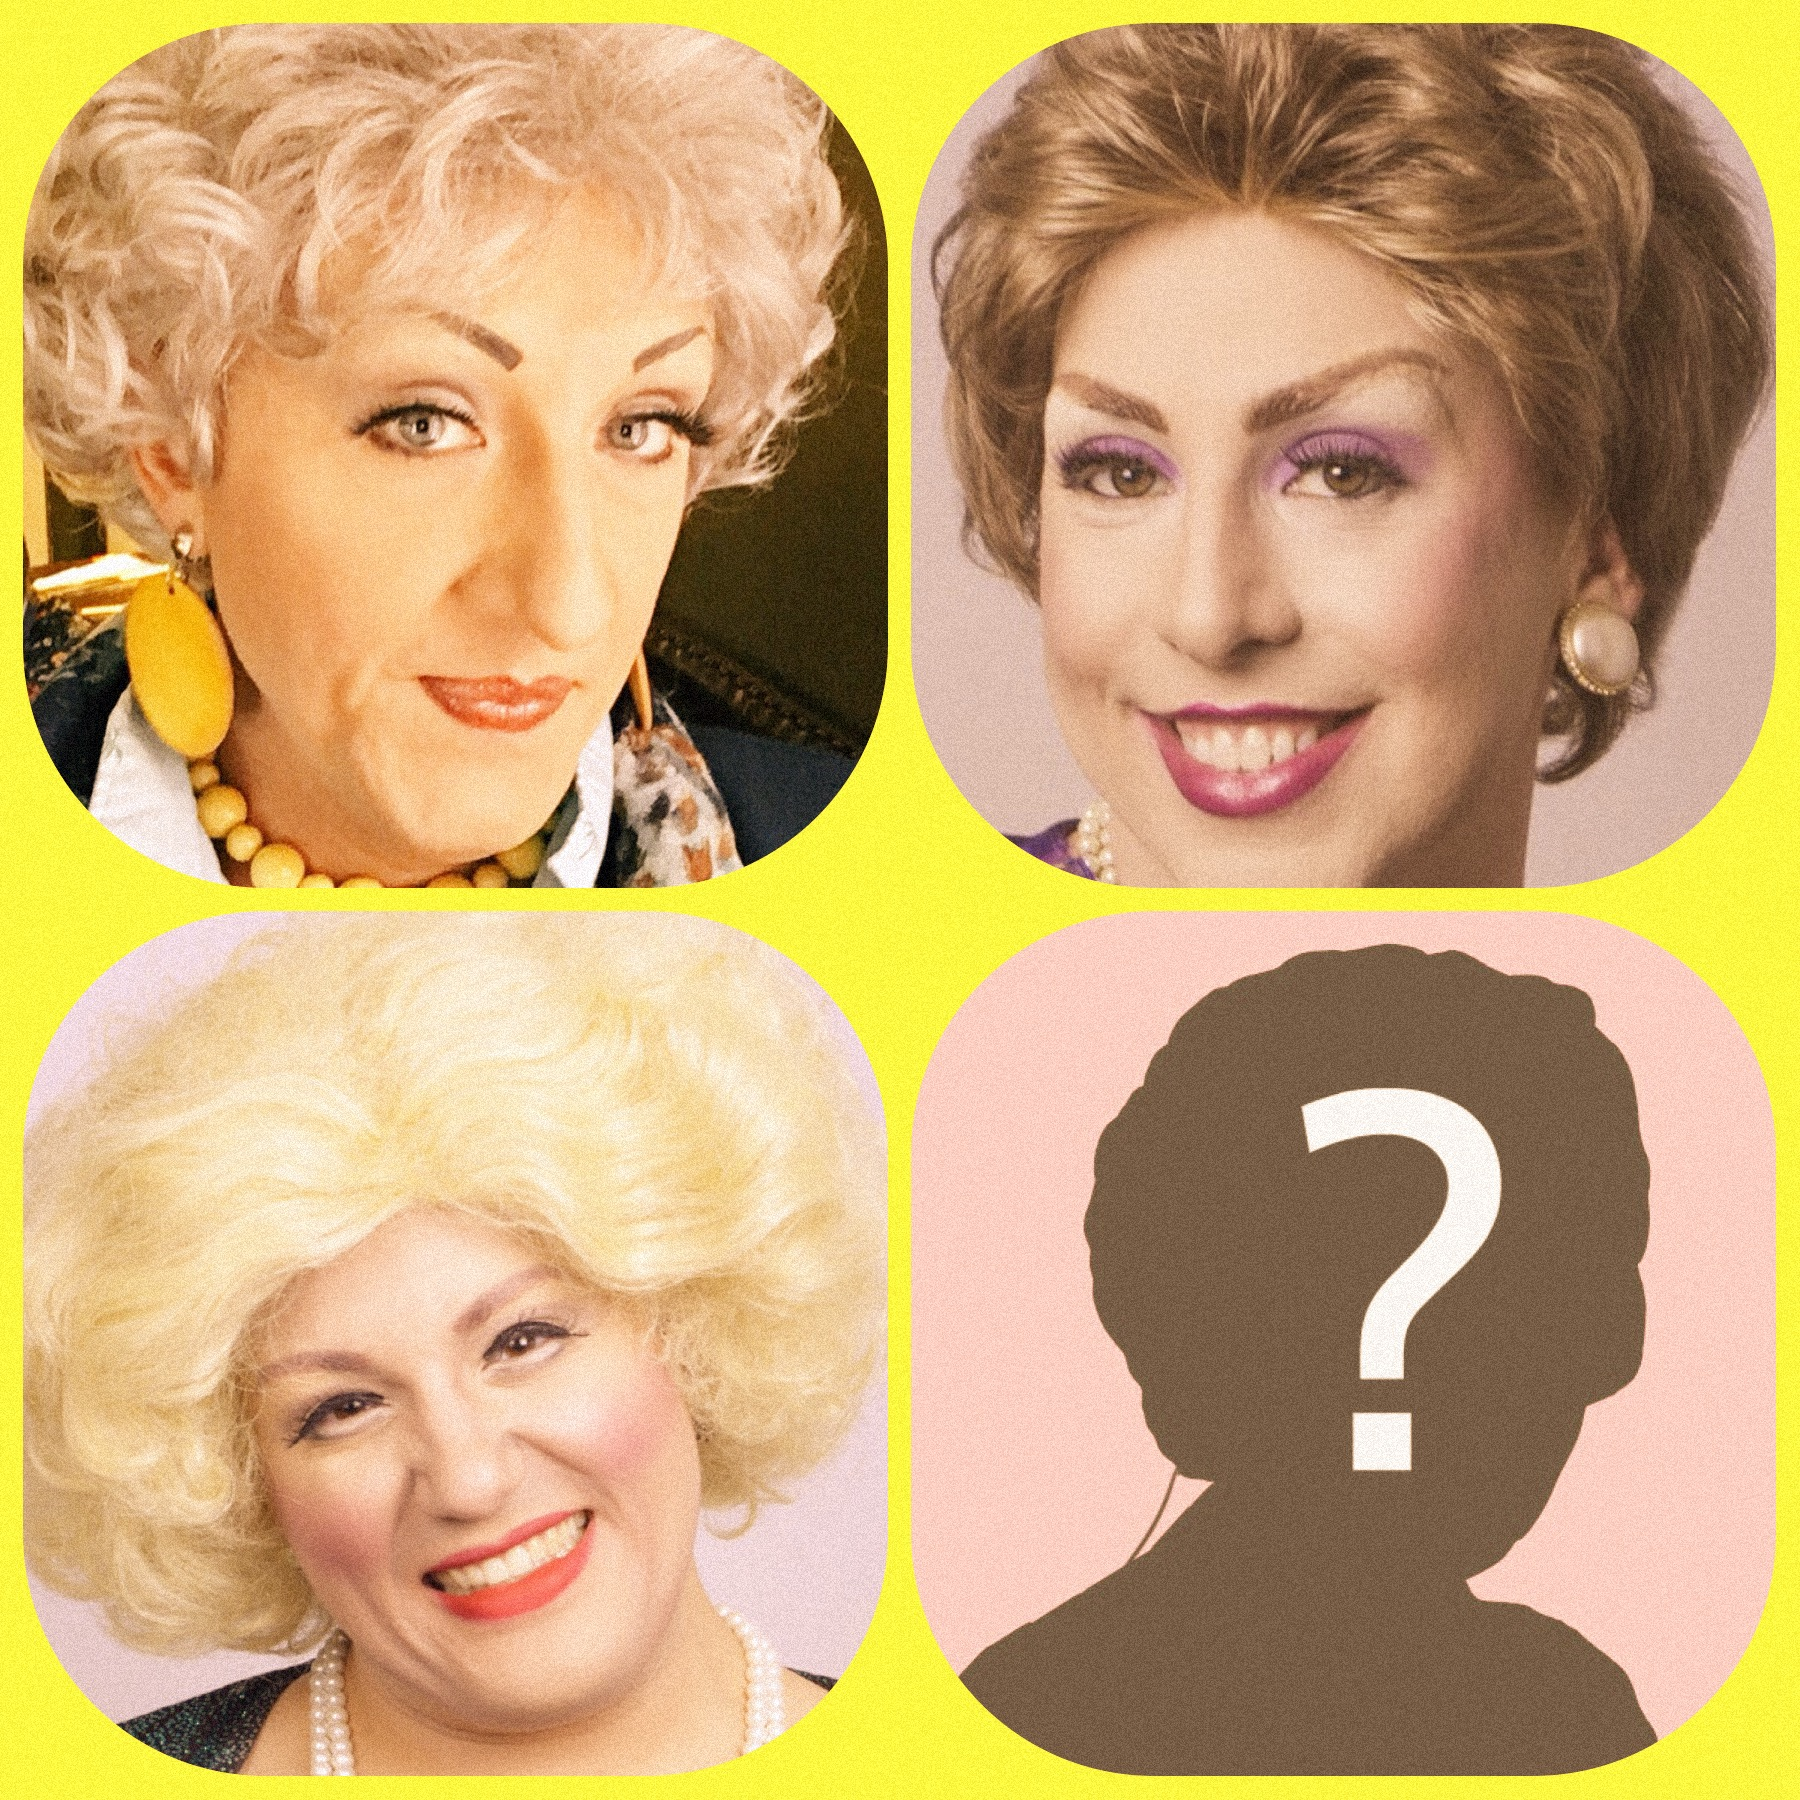 Top Left to Bottom Right: Jason B. Schmidt (Dorothy), Andy Crosten (Blanche), and Gerry Mastrolia (Rose)